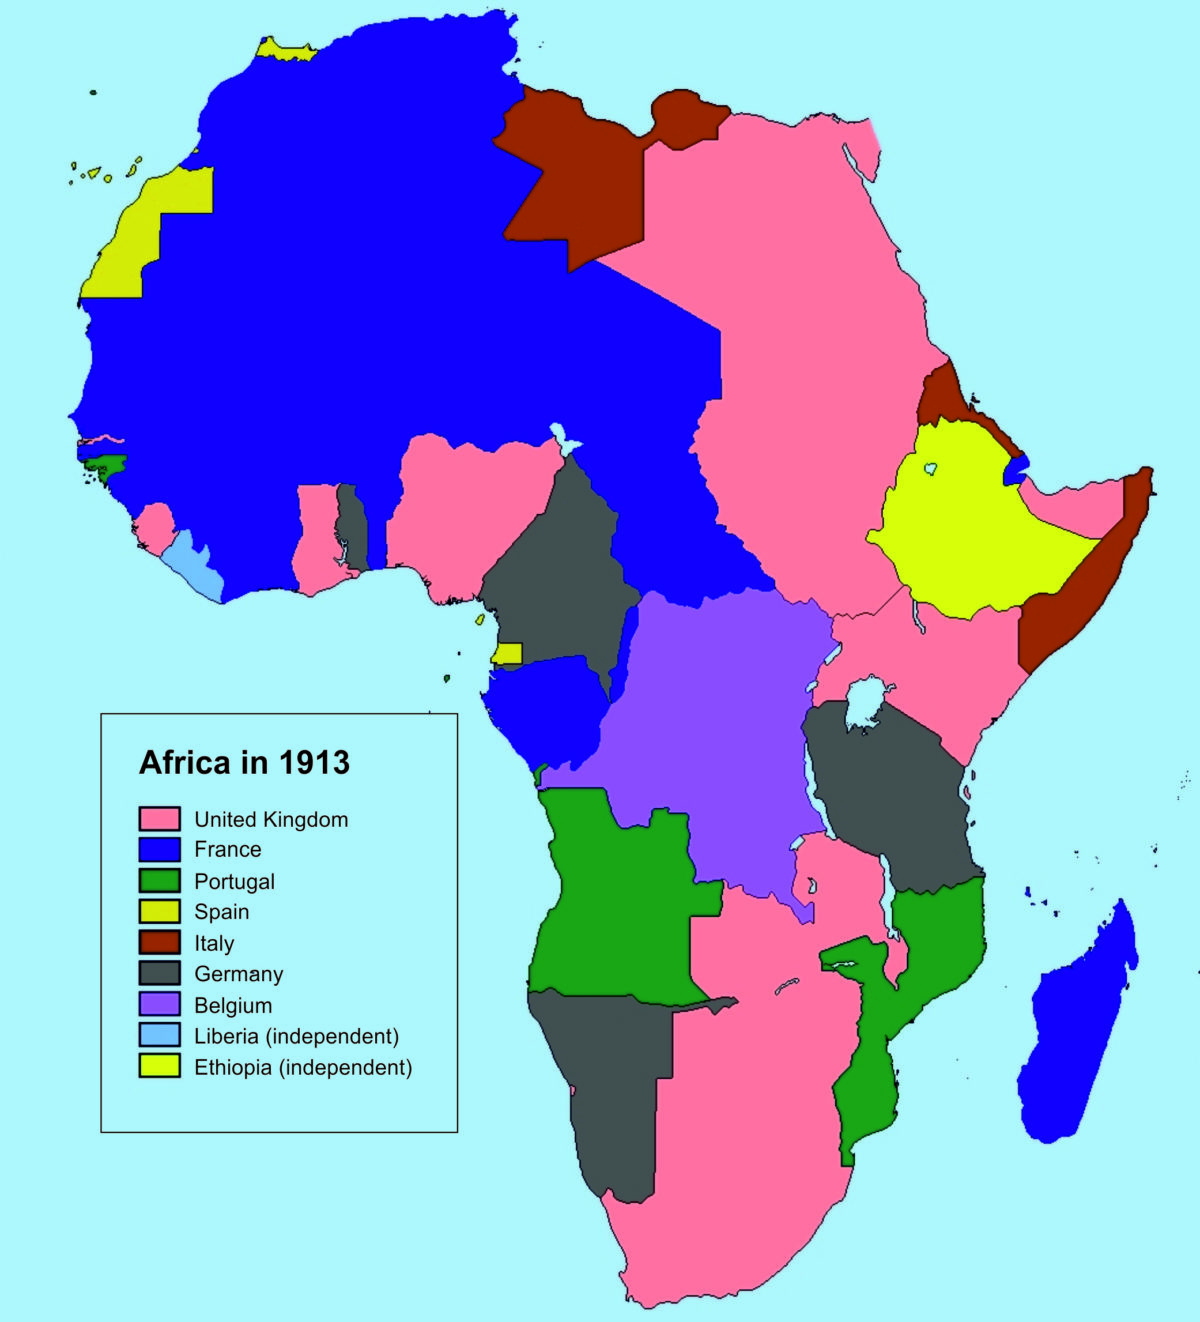 Colonial Africa in 1913 (Source: Wikipedia)   Away from the